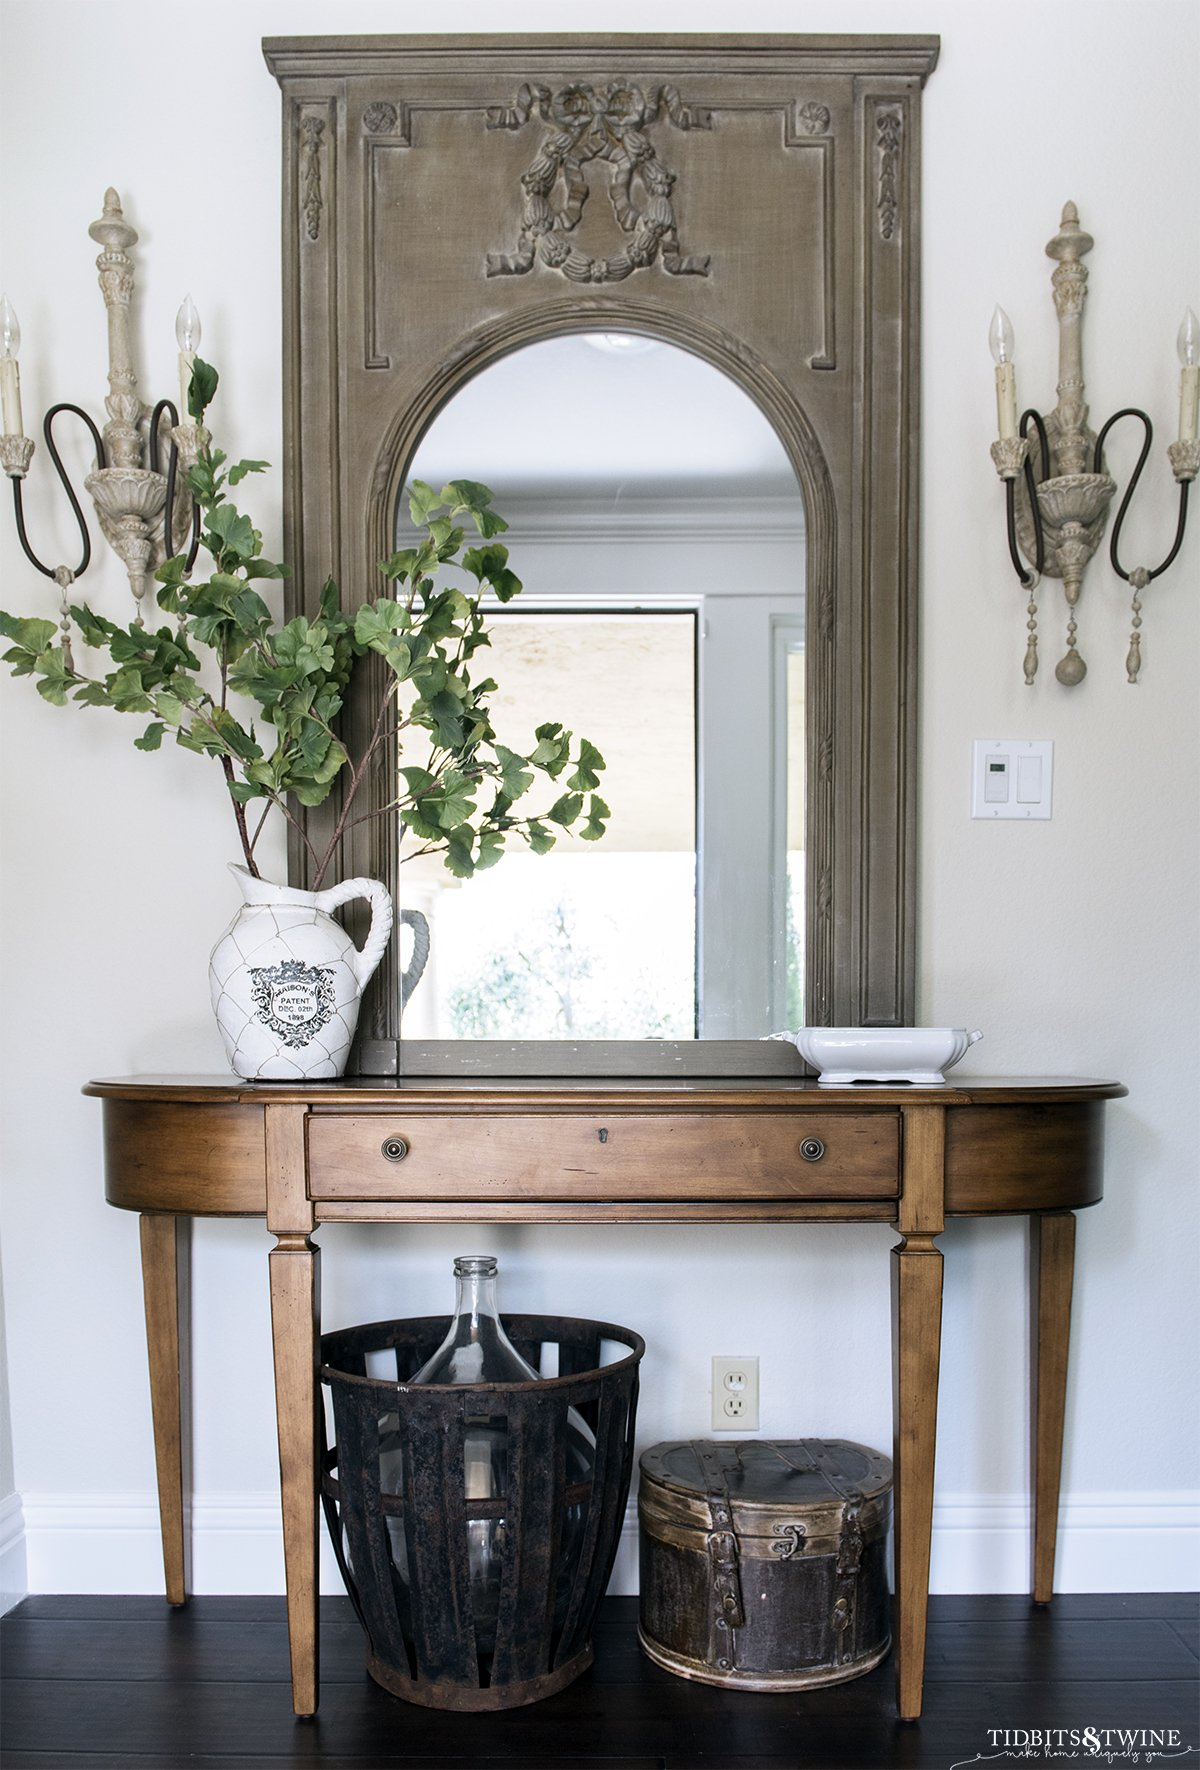 wood demilune console table with green trumeau mirror above and french sconces on either side on ballet white painted wall